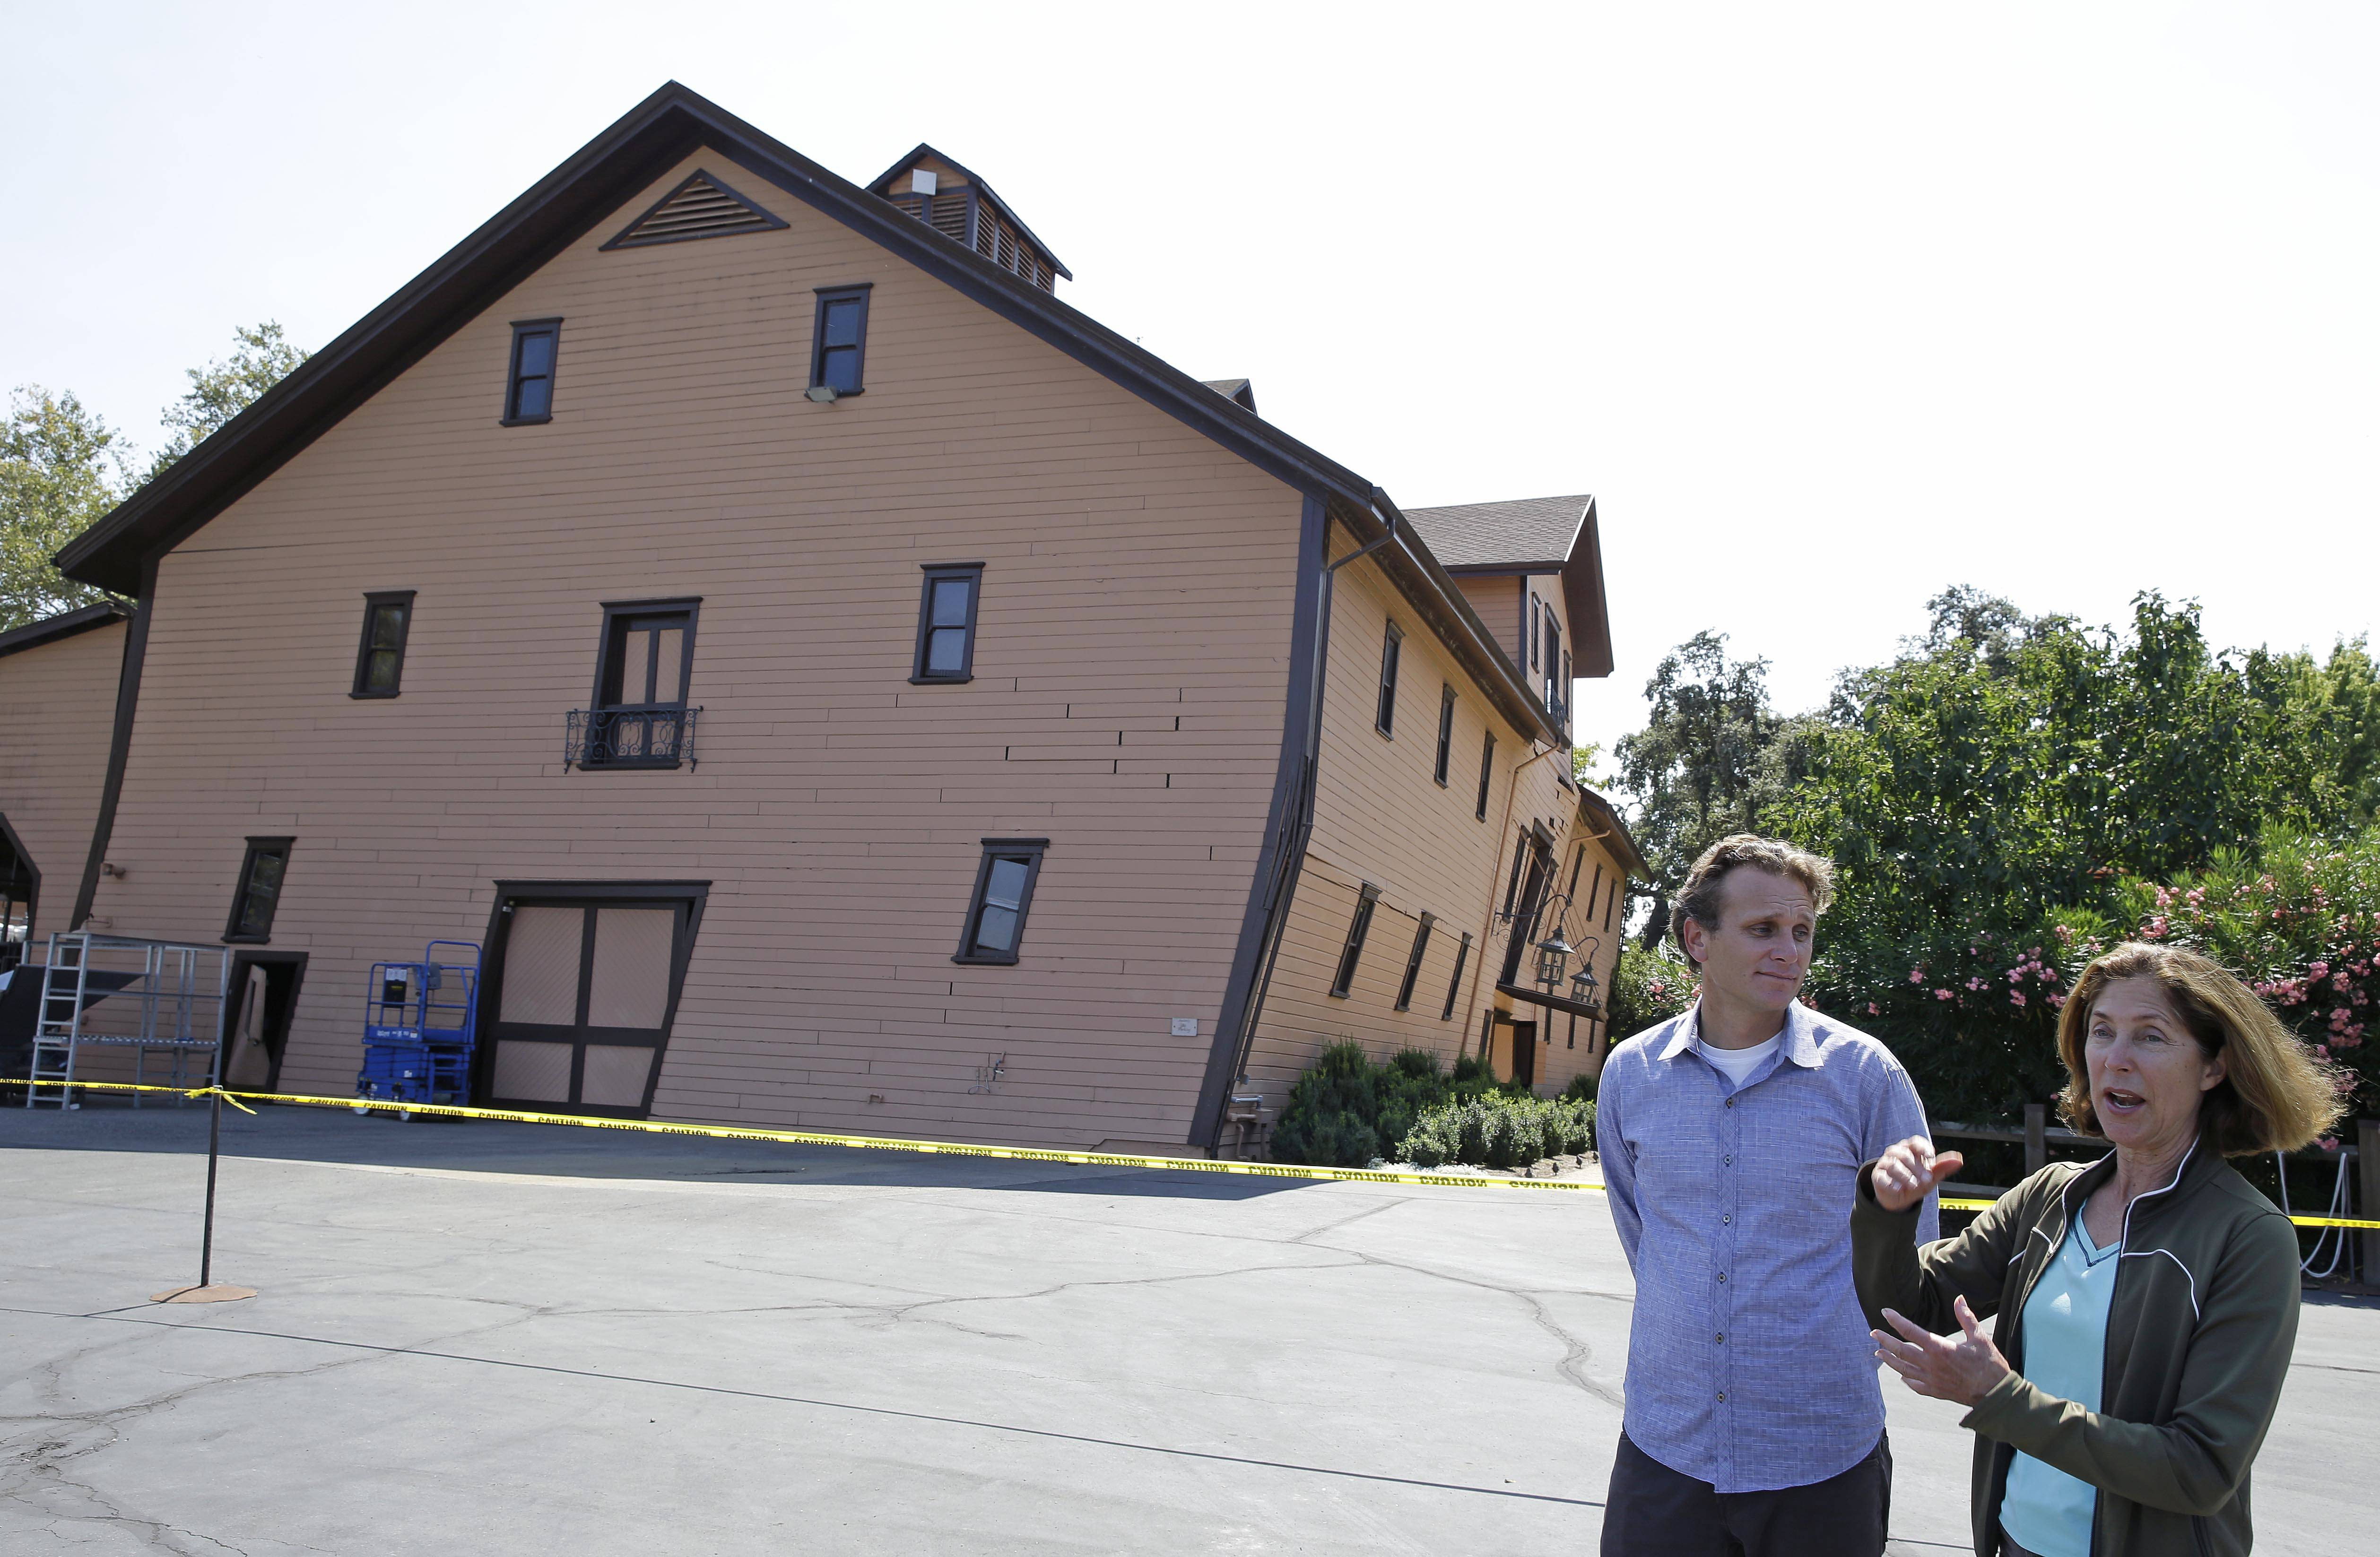 Owner Janet Trefethen, right, and president Jon Ruel, left, talk about the earthquake damage to the historic winery building, seen in the background, dating from 1886 at Trefethen Family Vineyards Monday in Napa, Calif. The winery is hopeful they can save the building after San Francisco Bay Area's strongest earthquake in 25 years struck the heart of California's wine country early Sunday.